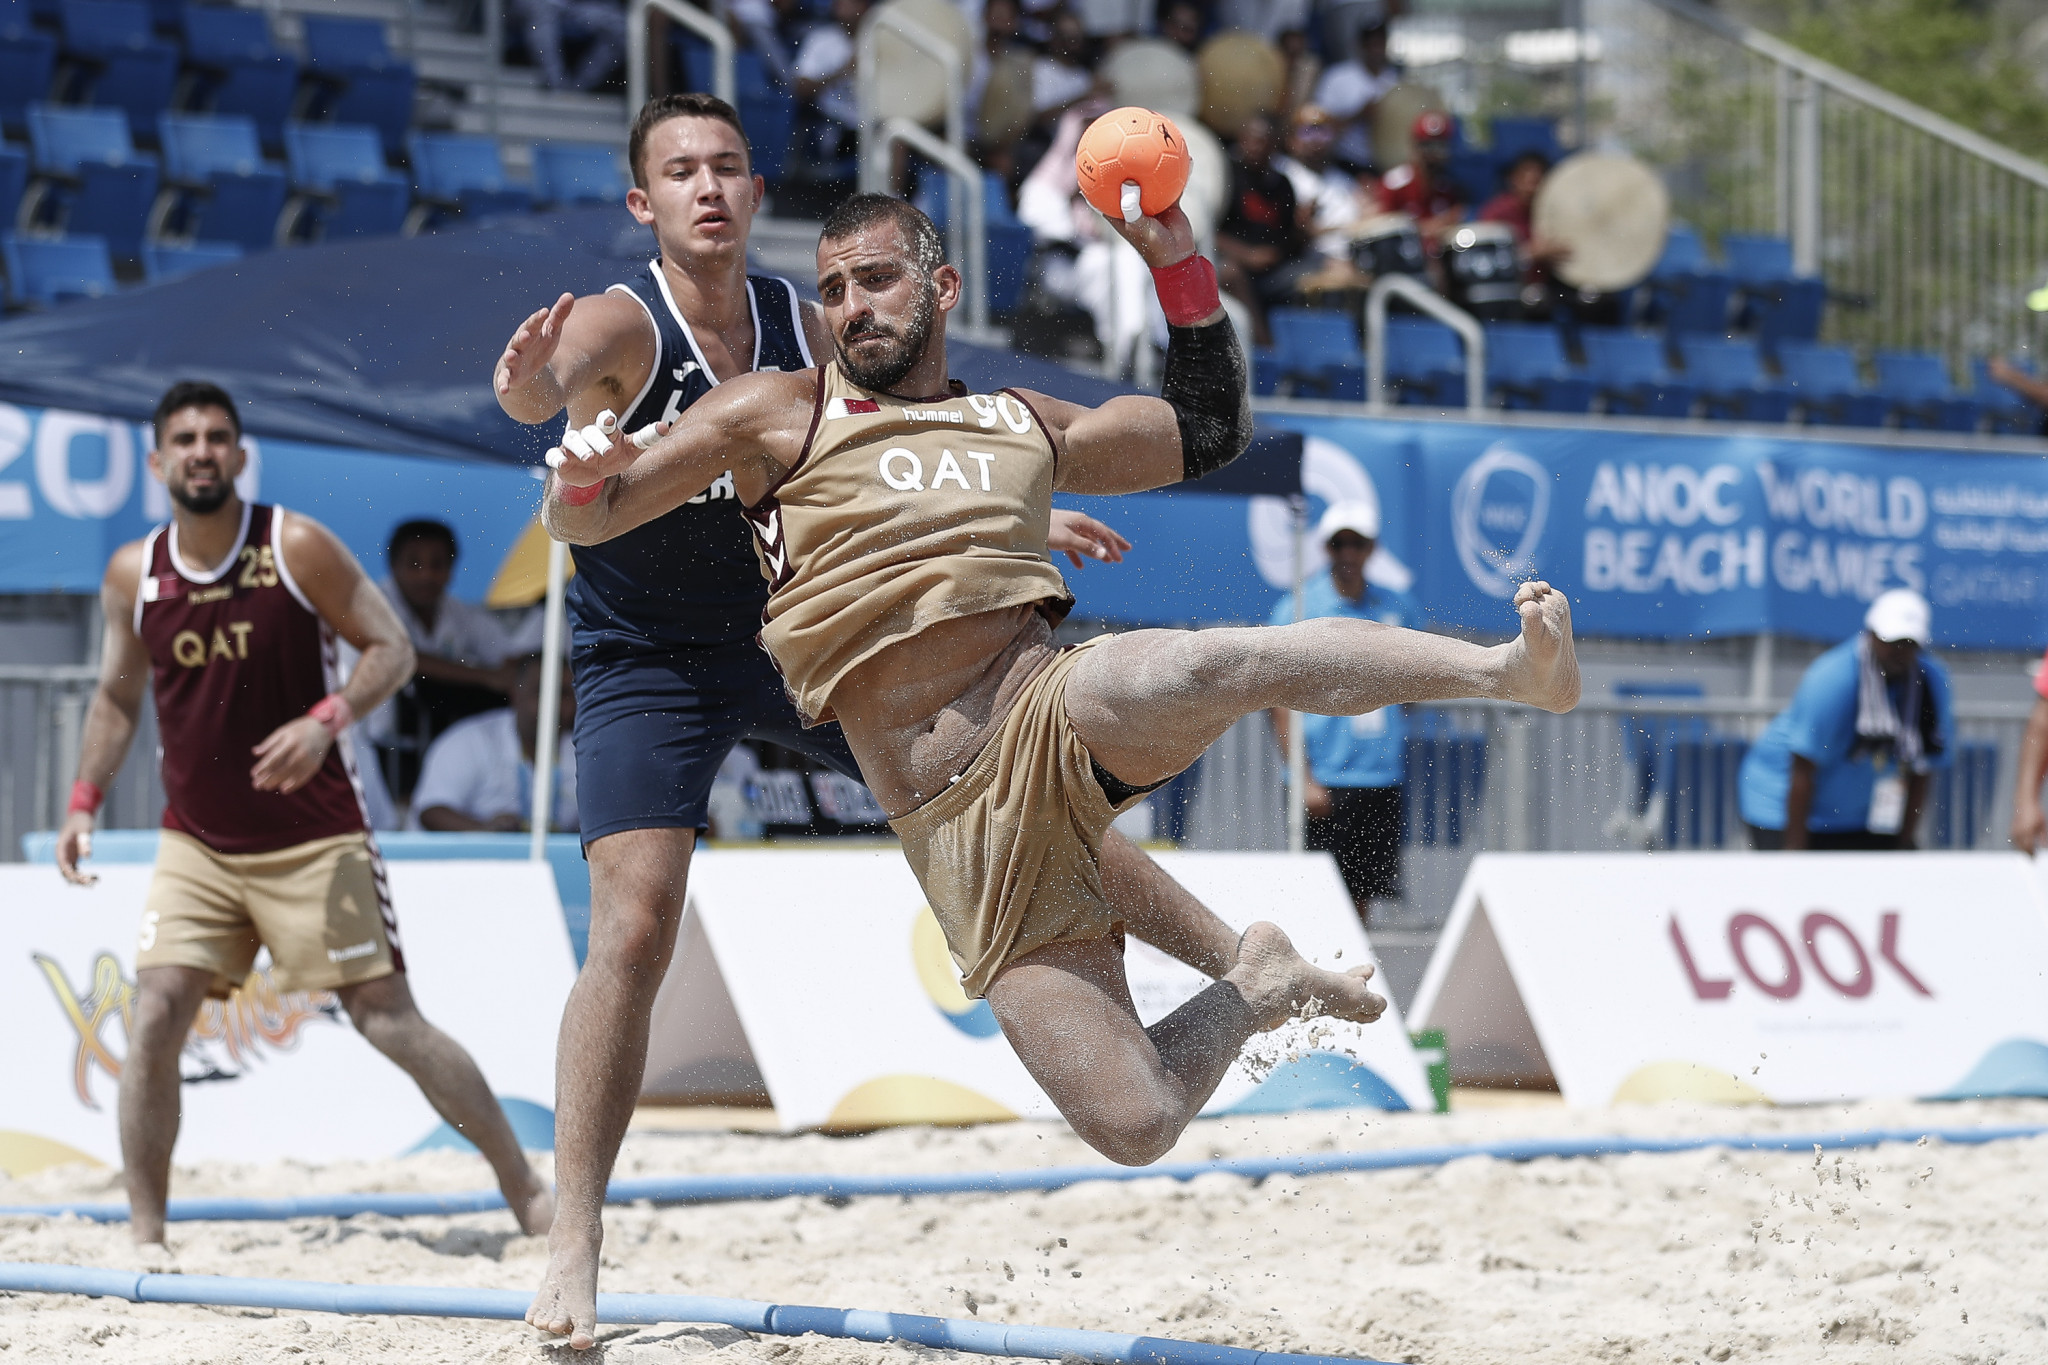 Qatar's men impressed on home sand with a pair of victories ©ANOC